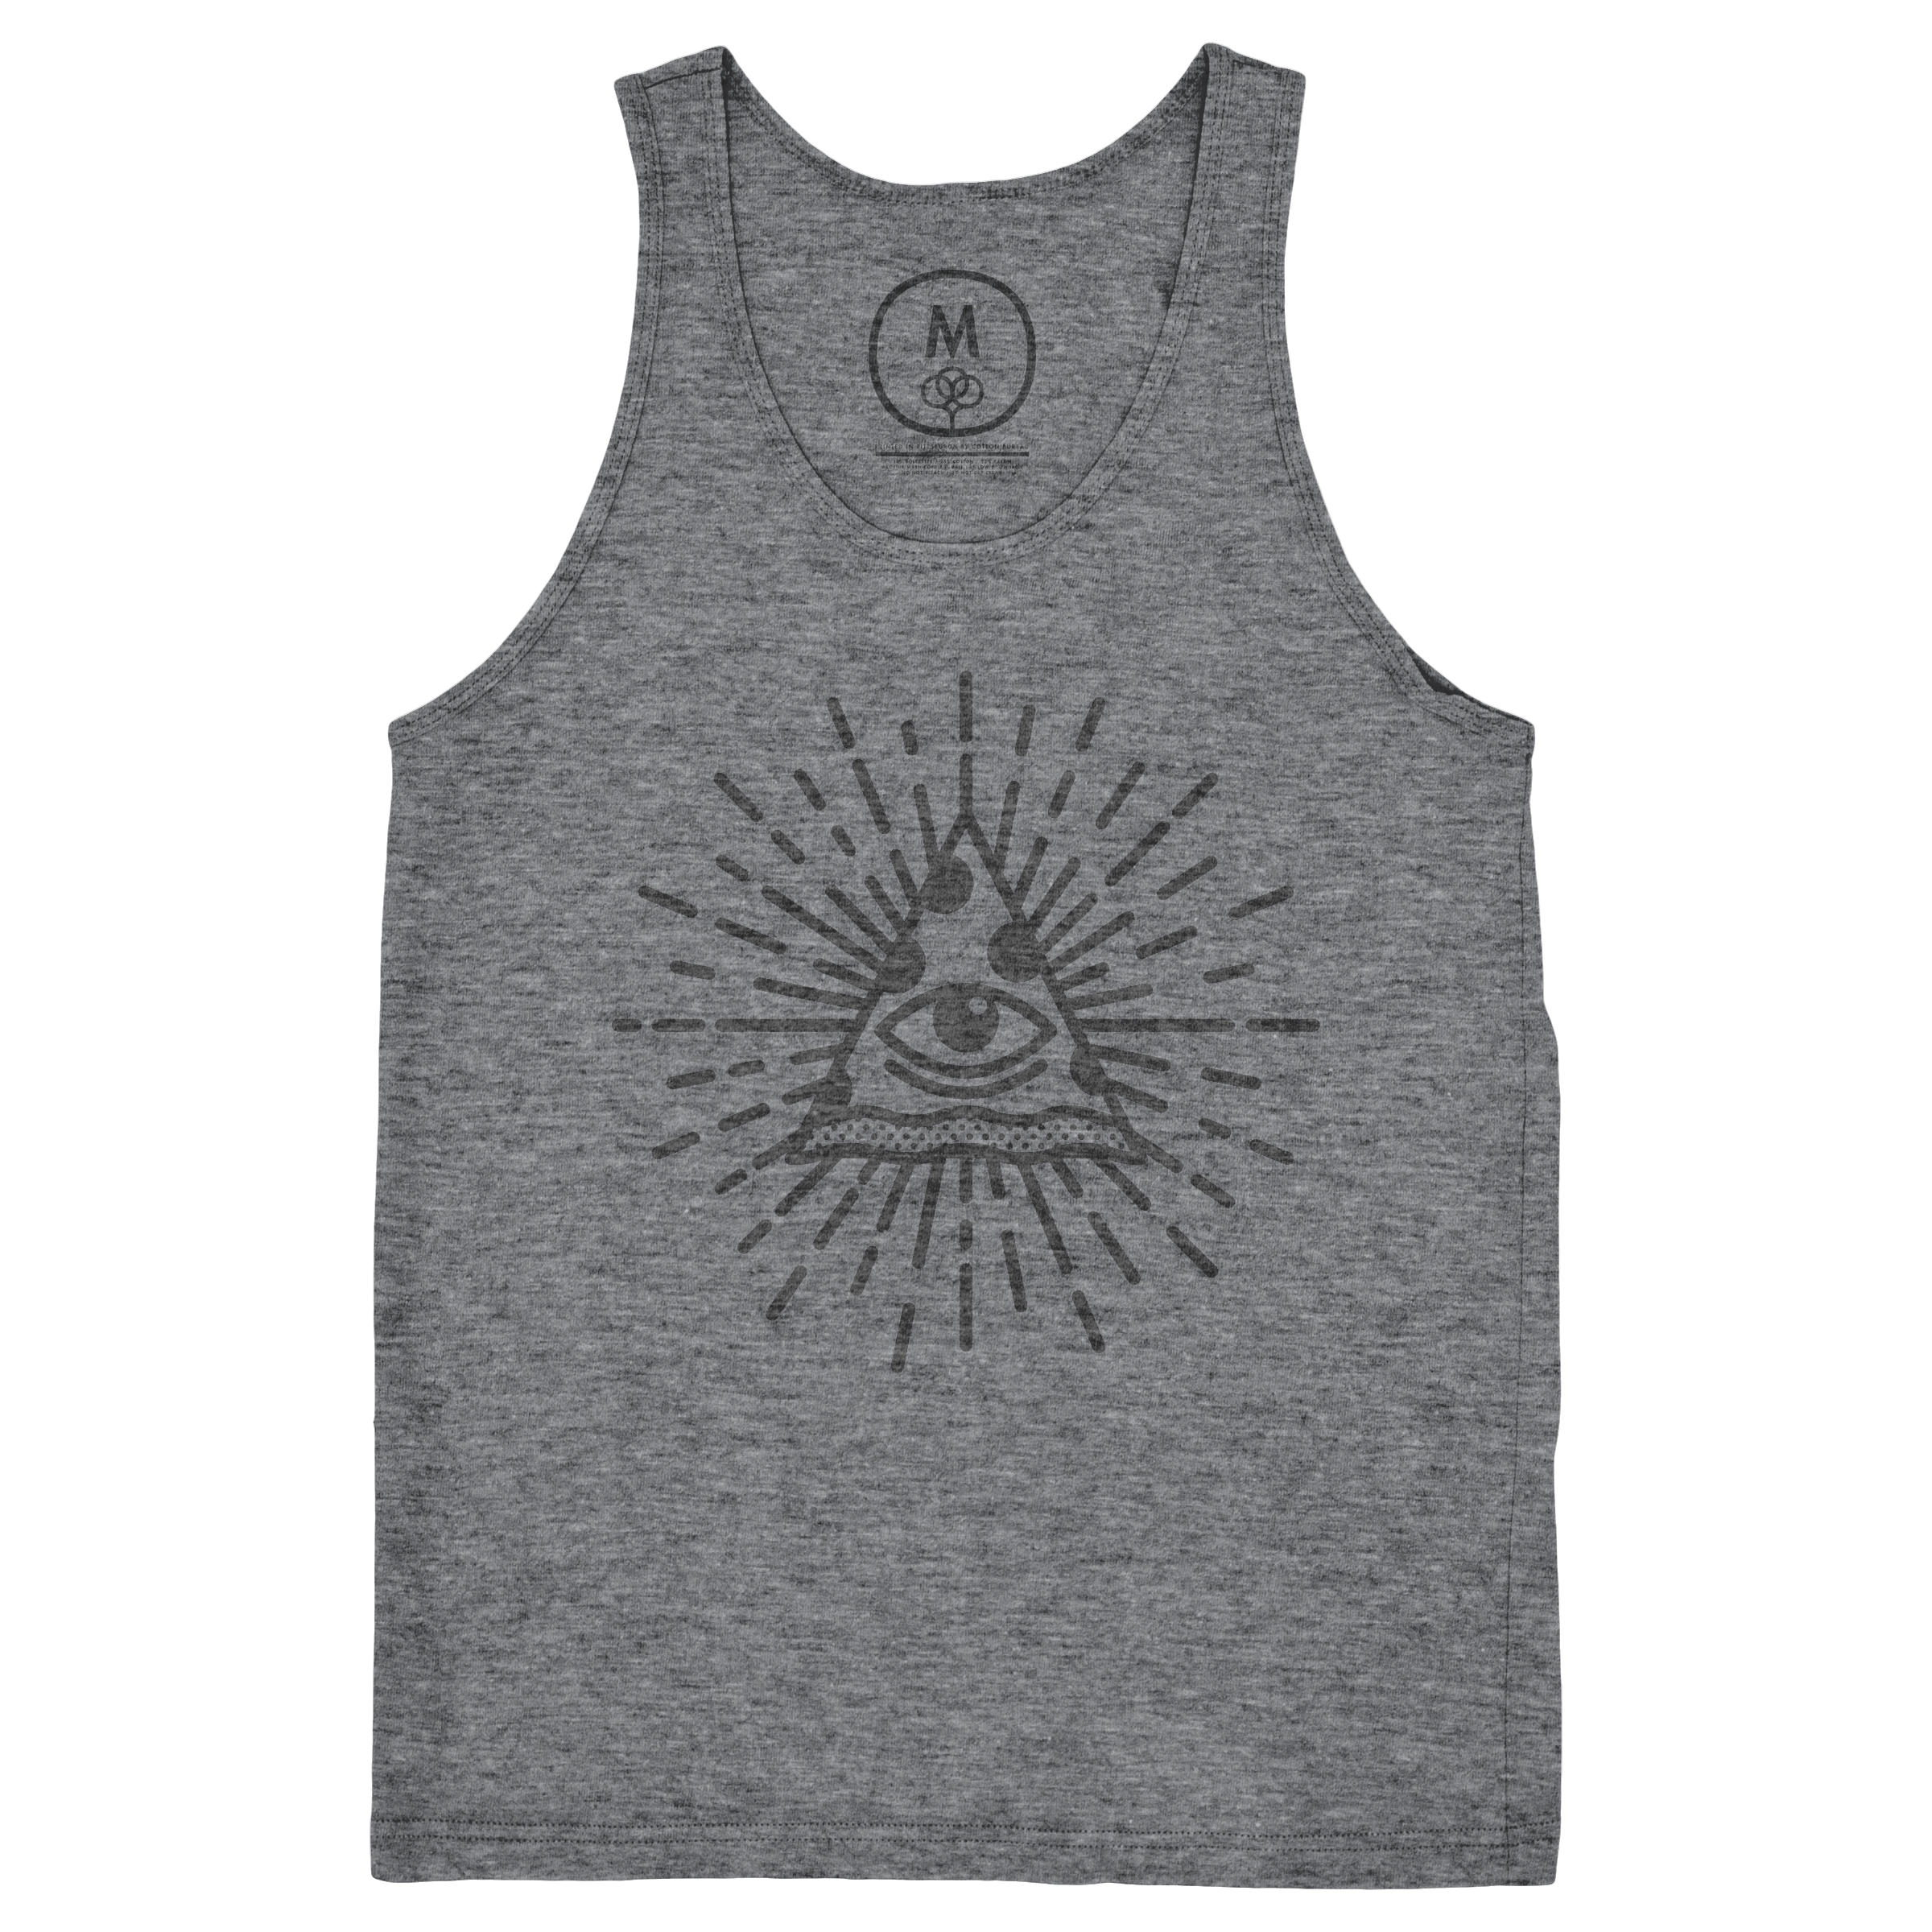 The All-Seeing Pizza Tank Top